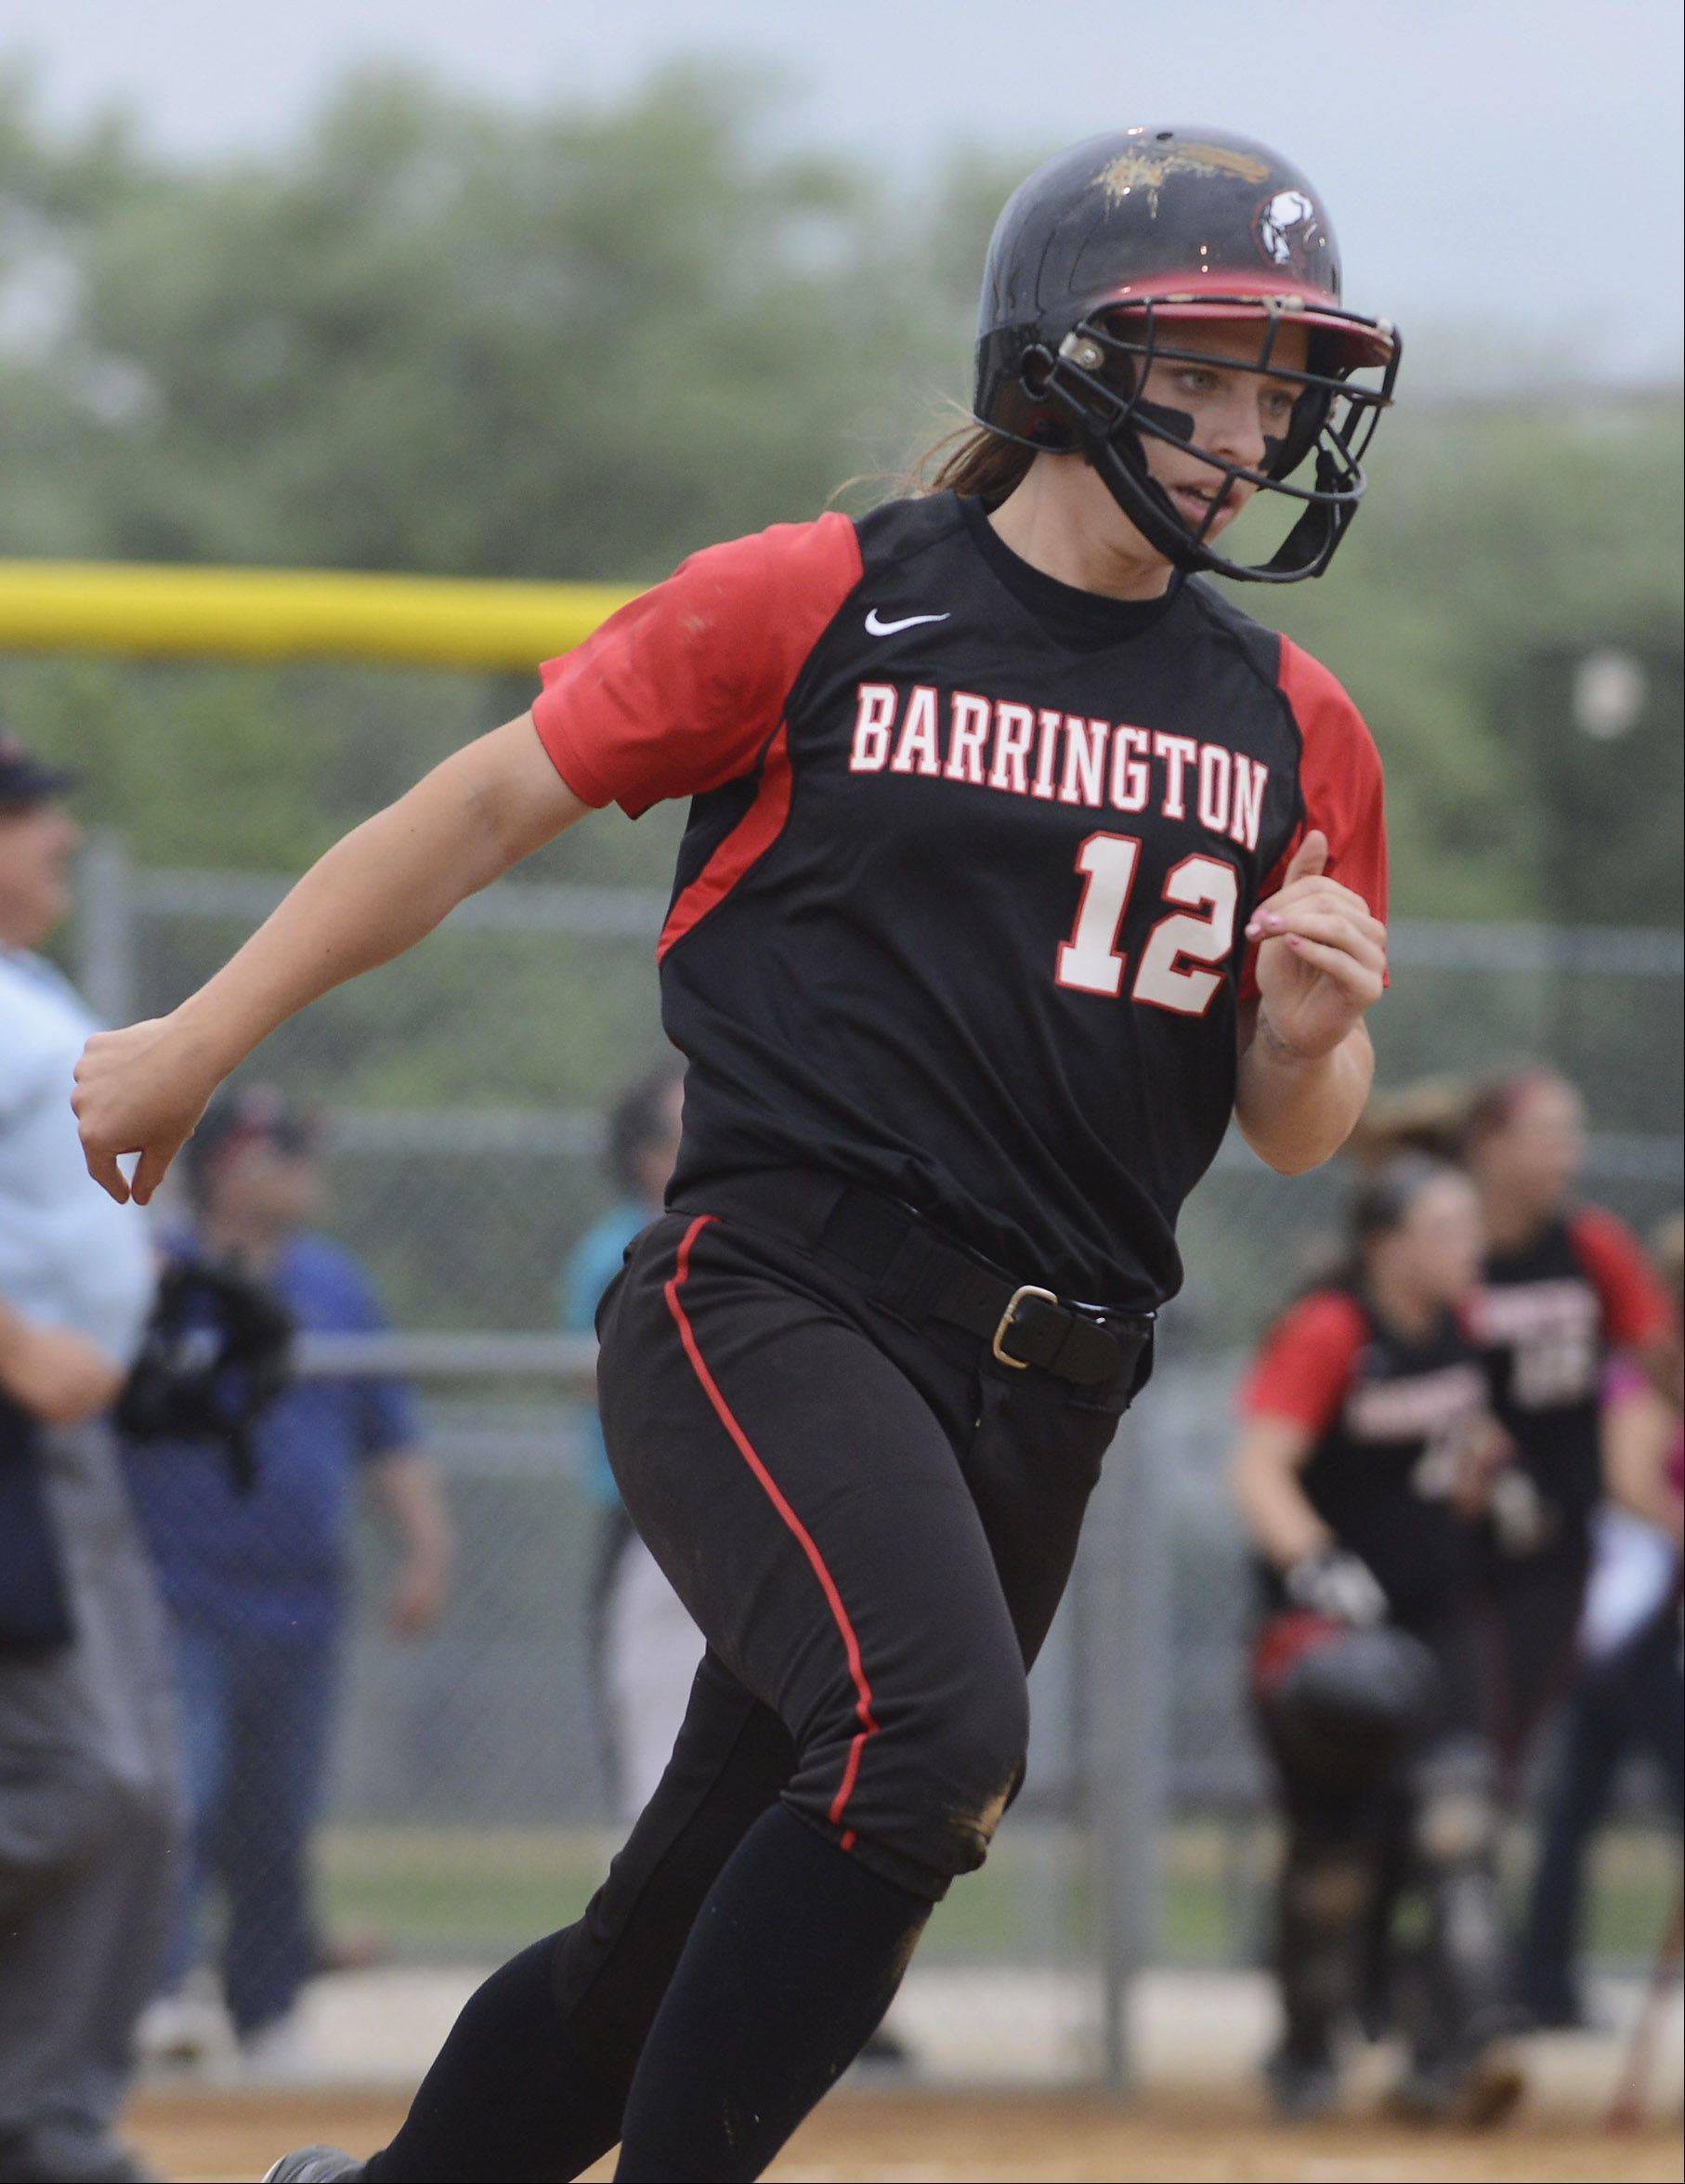 Barrington's Loren Krzysko rounds the bases after hitting a home run against Fremd during the Rolling Meadows sectional semifinal Tuesday.